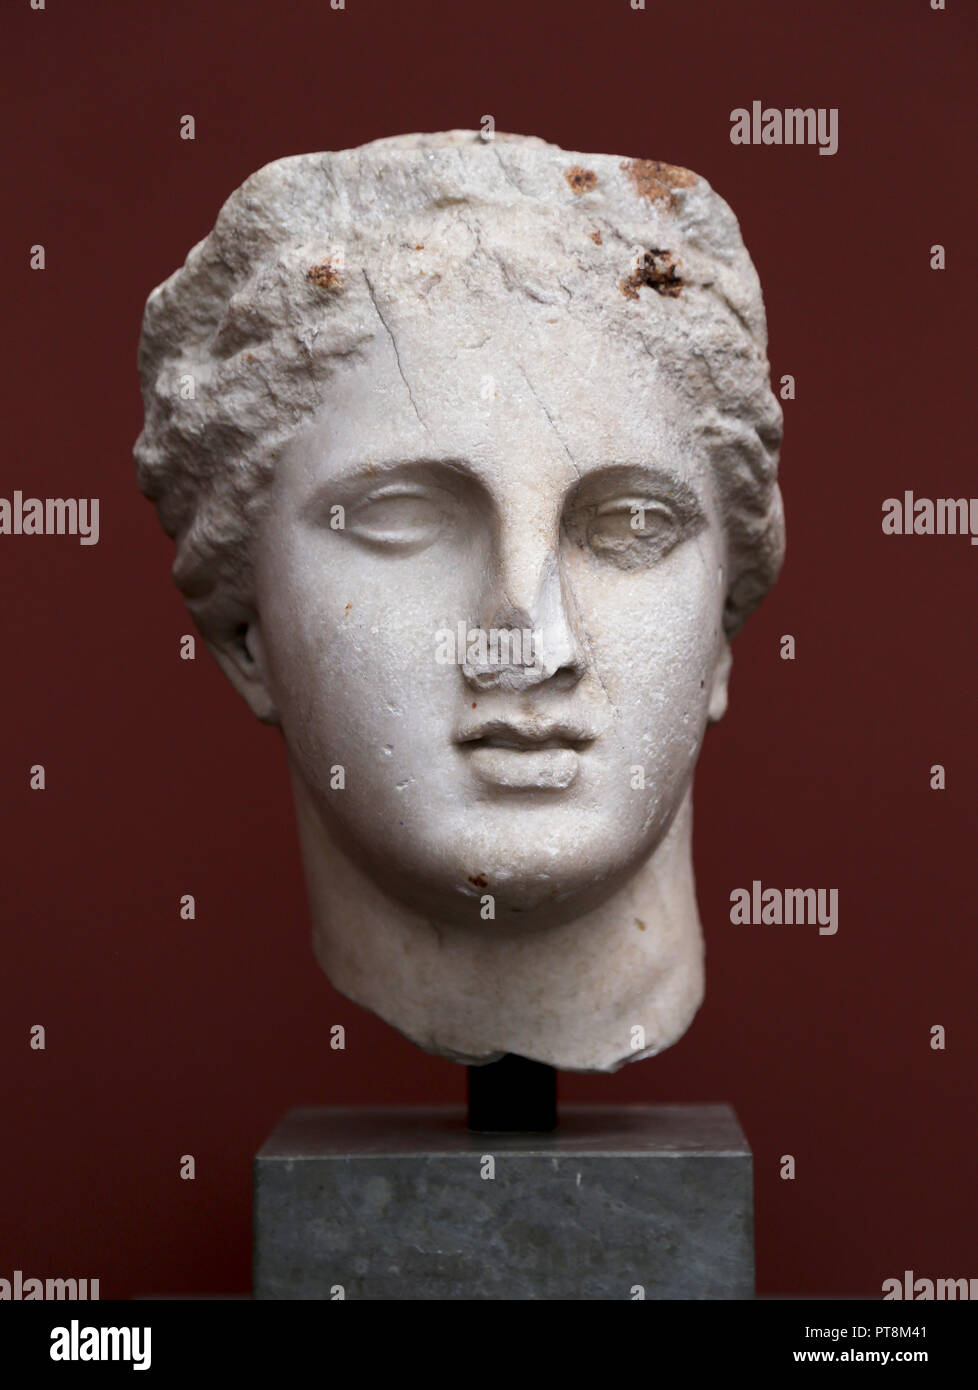 Head of an Egyptian Qeen or Goddess. Marble face. 2nd century BC. probably Alexandria. - Stock Image